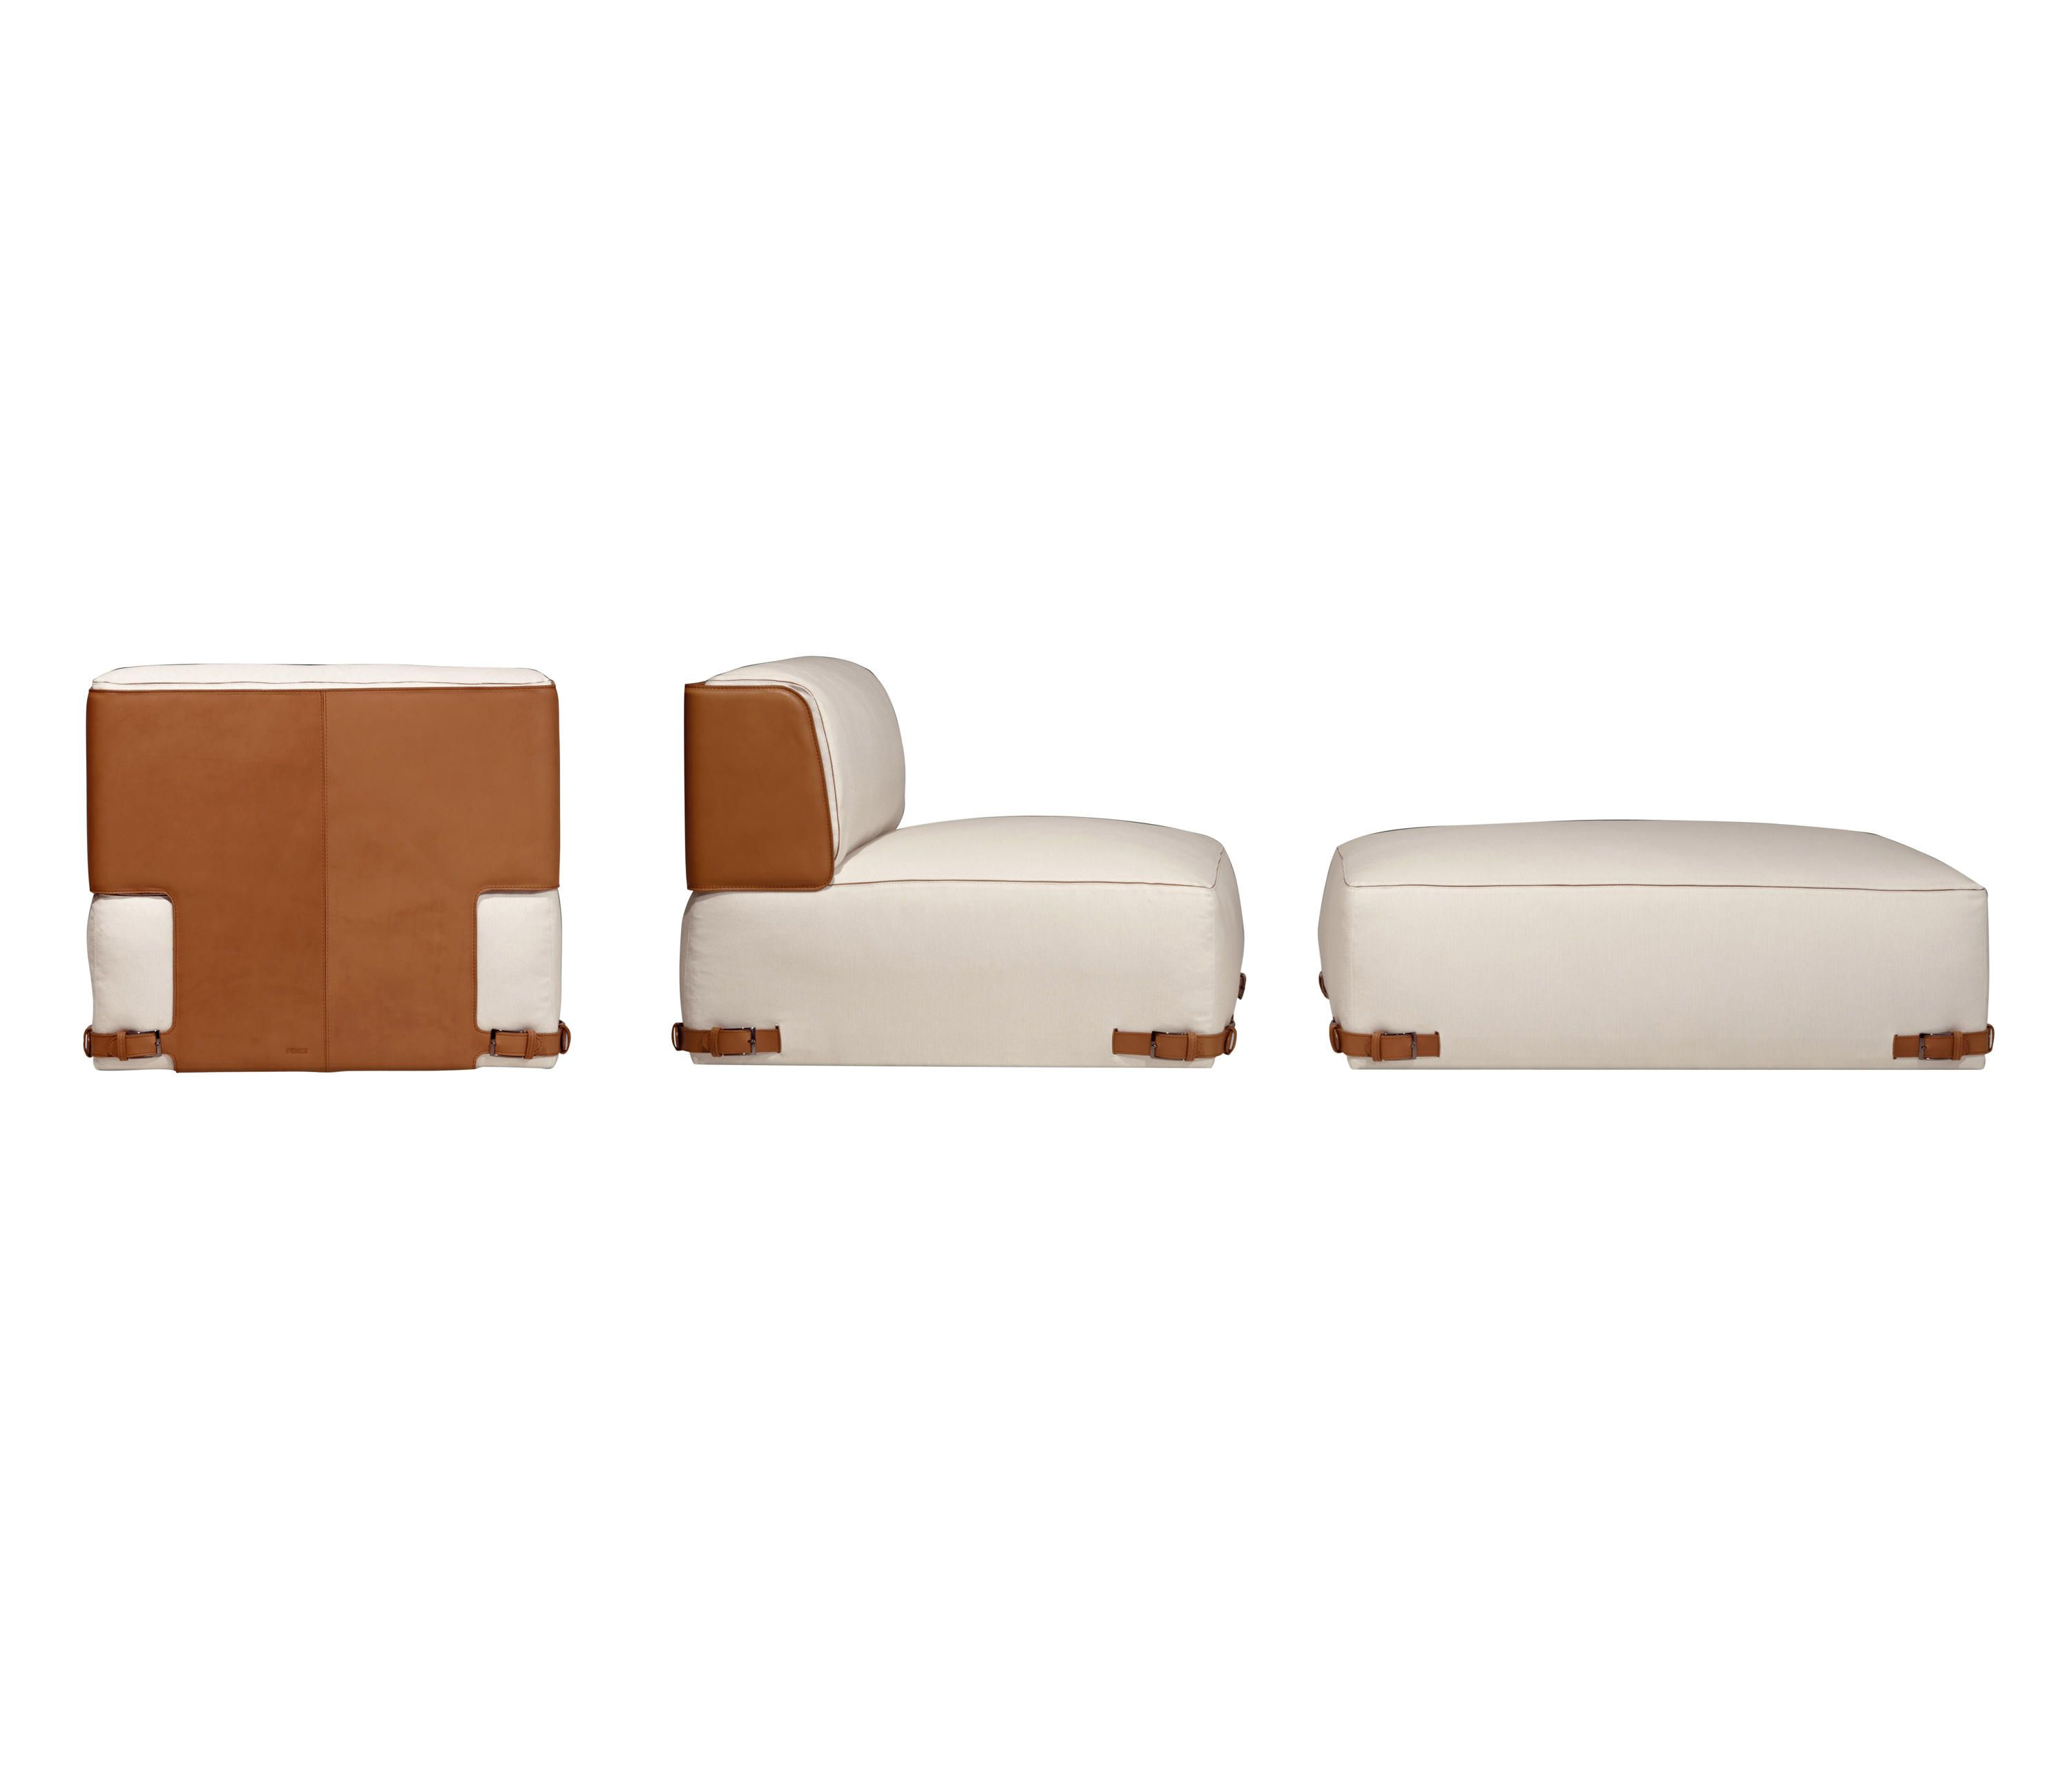 Awe Inspiring Soho Element Pouf Di Fendi Casa Poltrone Lounge Gram Pabps2019 Chair Design Images Pabps2019Com